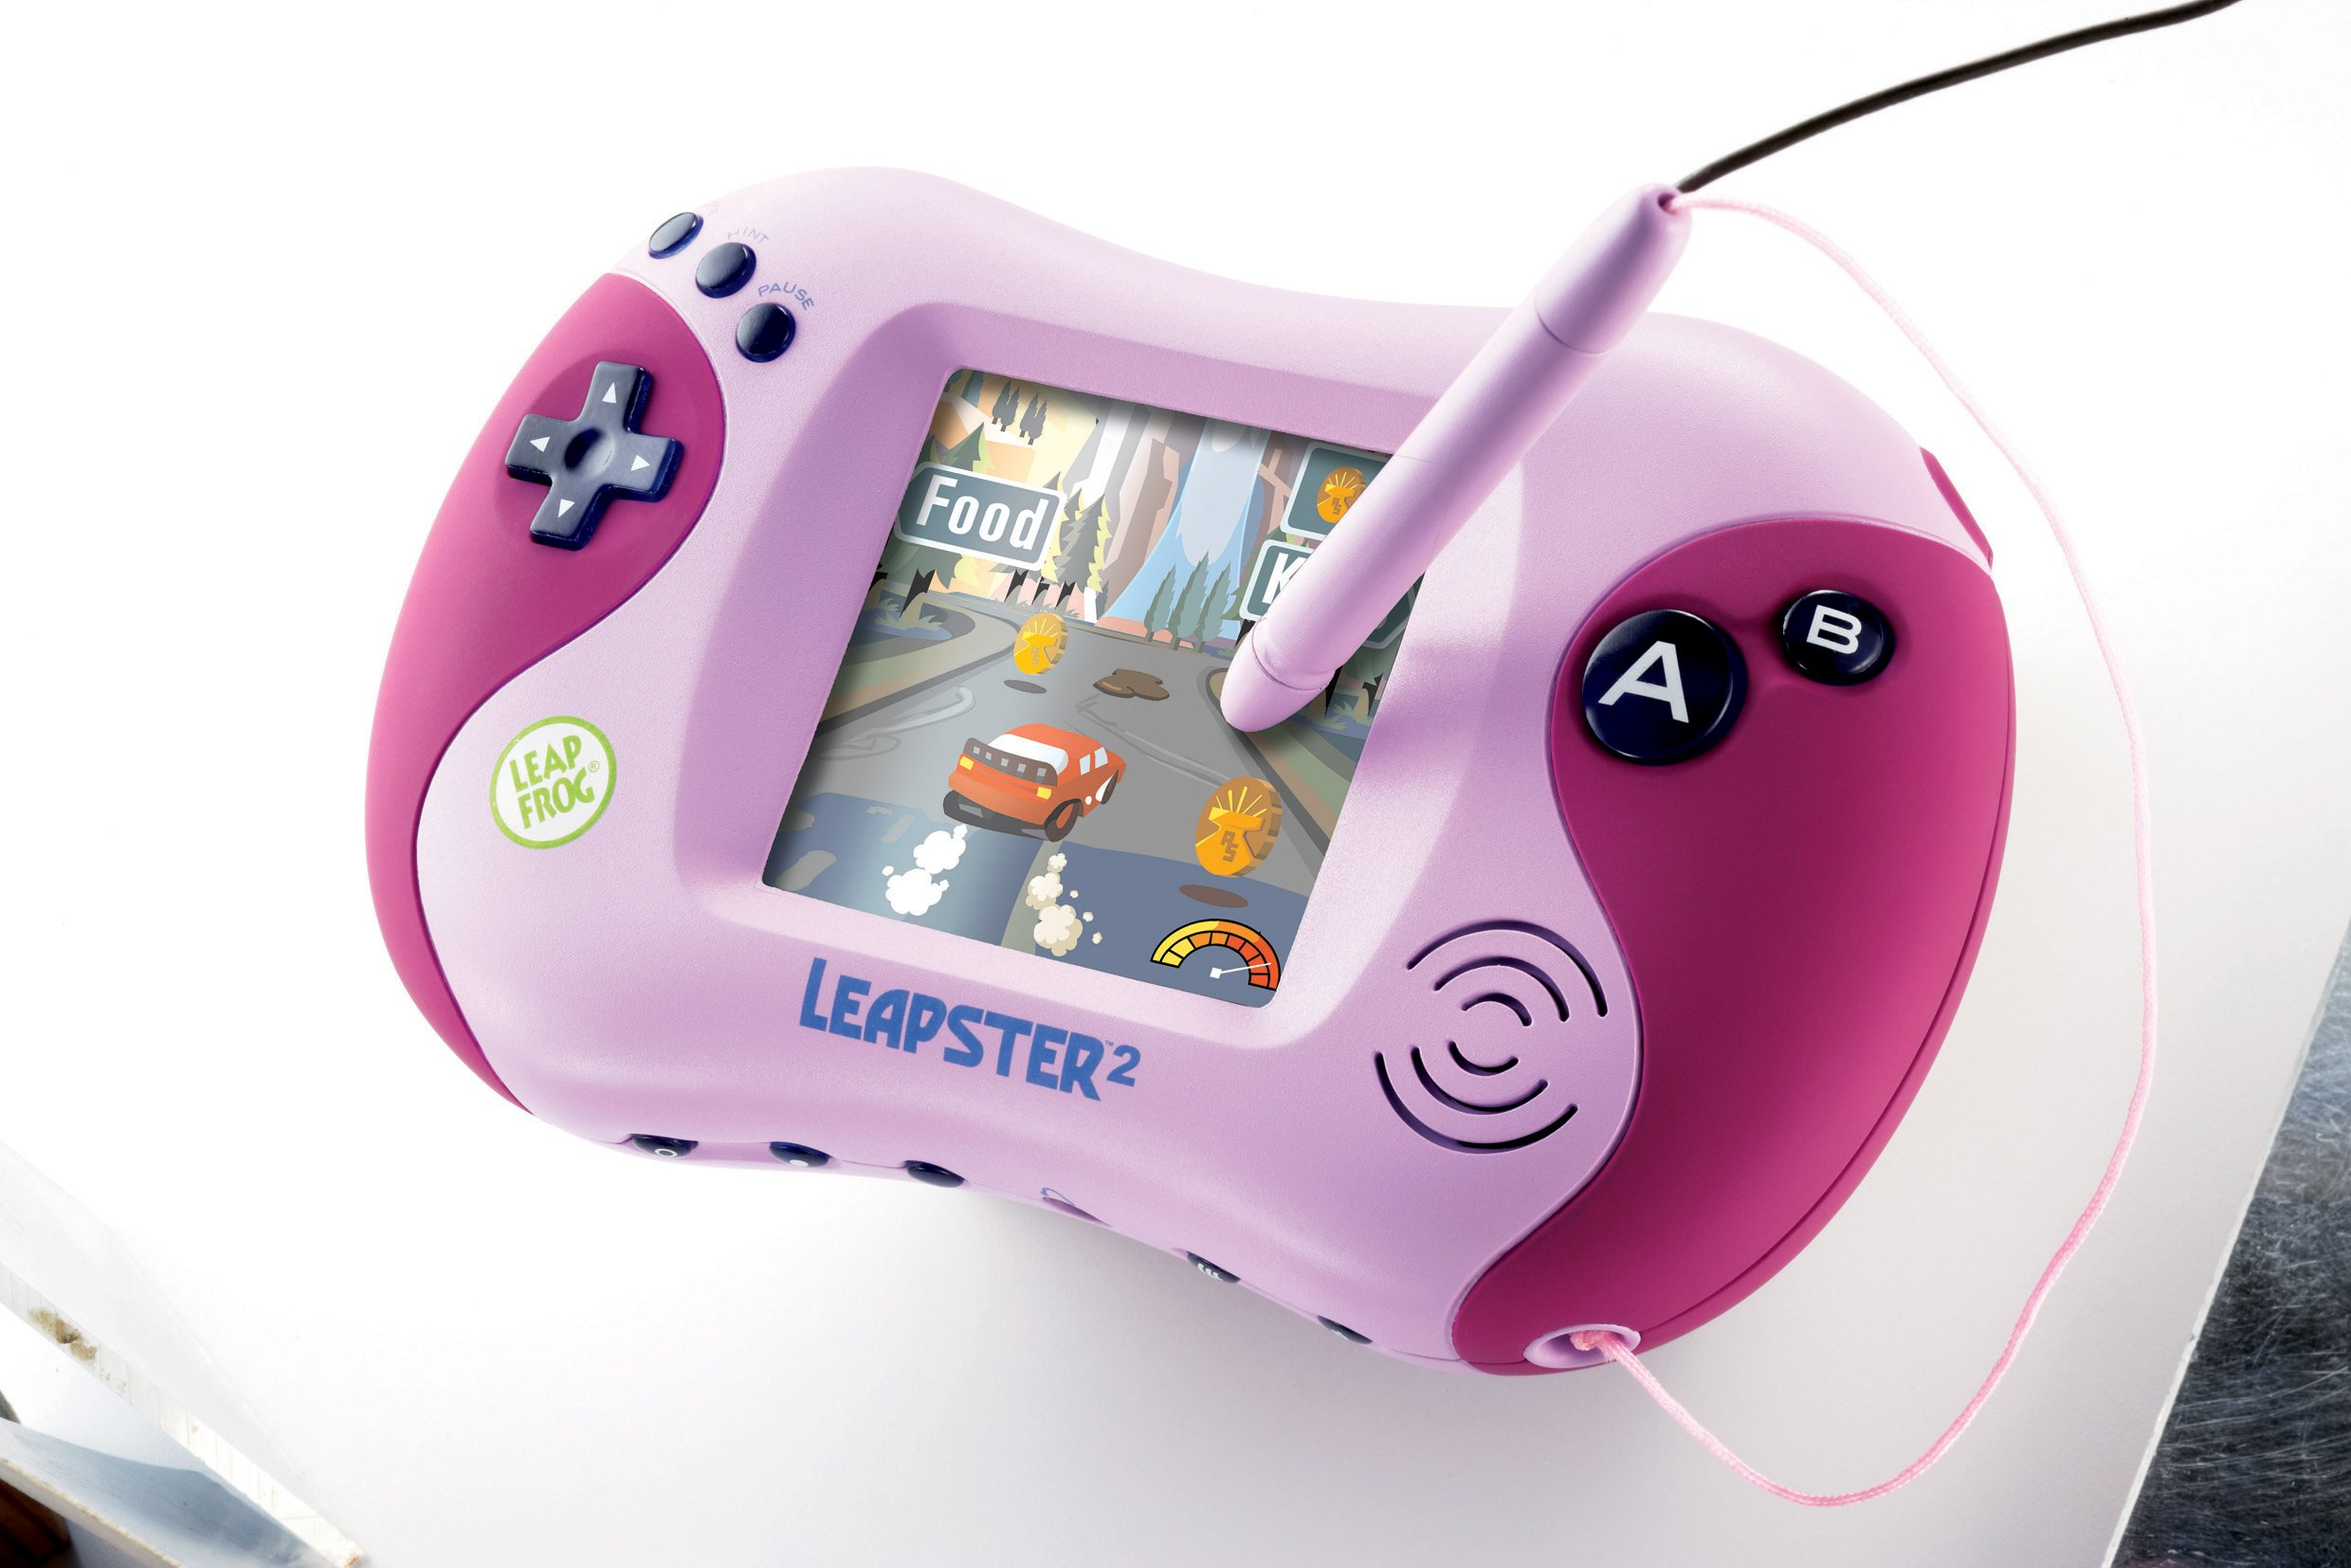 LeapFrog Leapster 2 Learning Game System - Pink by LeapFrog (Image #4)